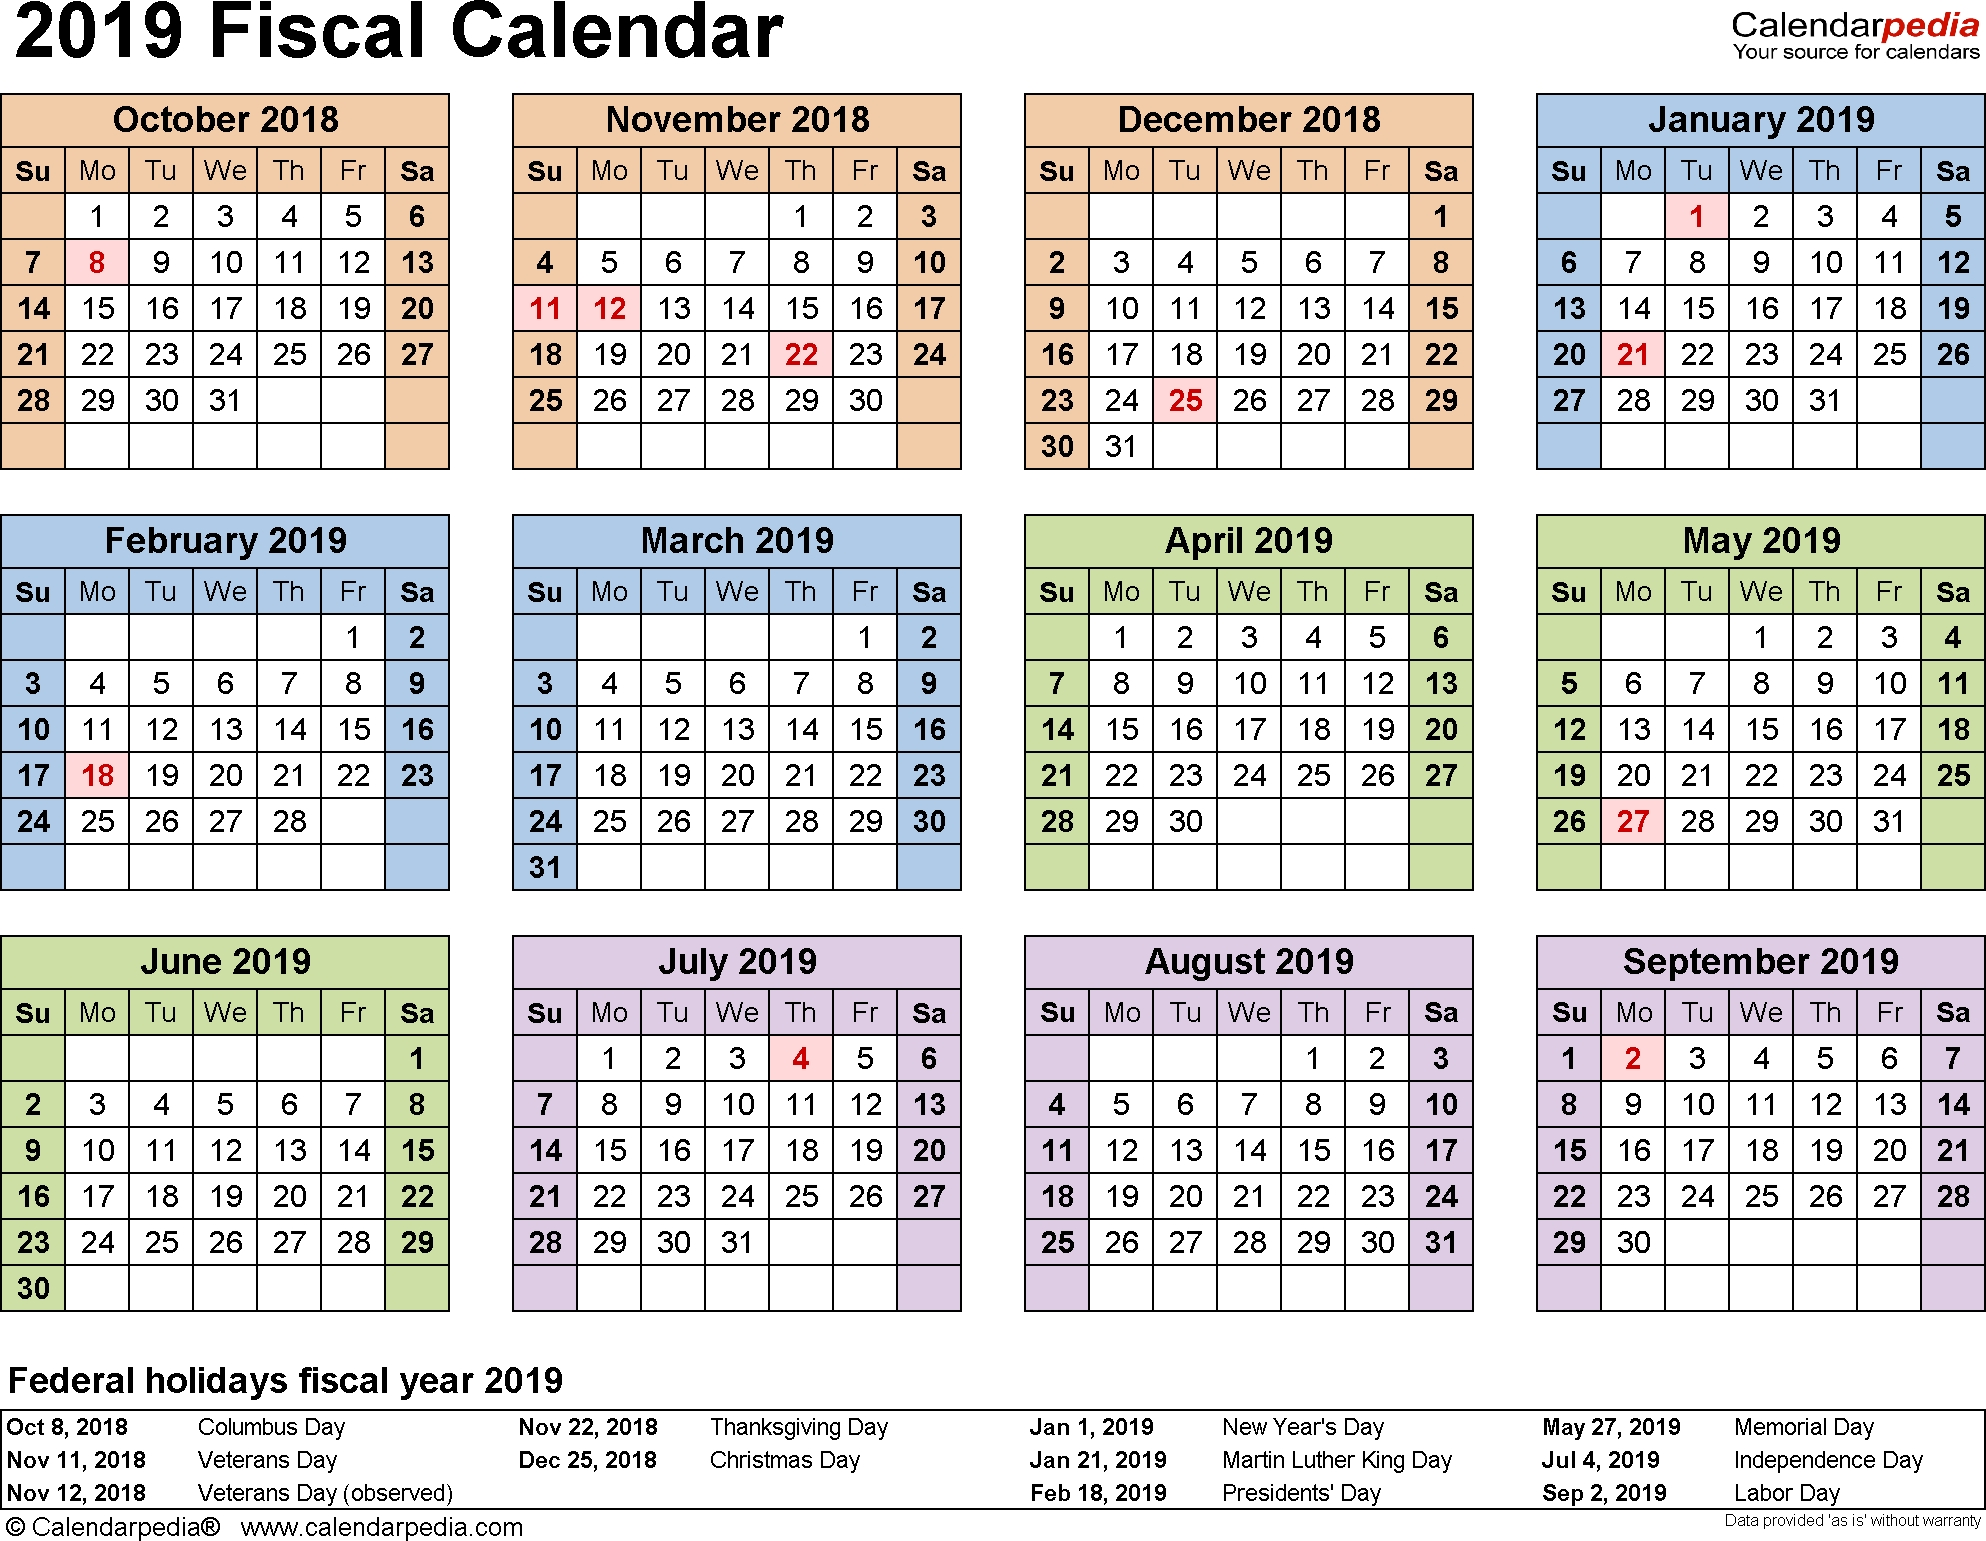 Fiscal Calendars 2019 - Free Printable Word Templates intended for 2019 Fiscal Calendar 4 4 5